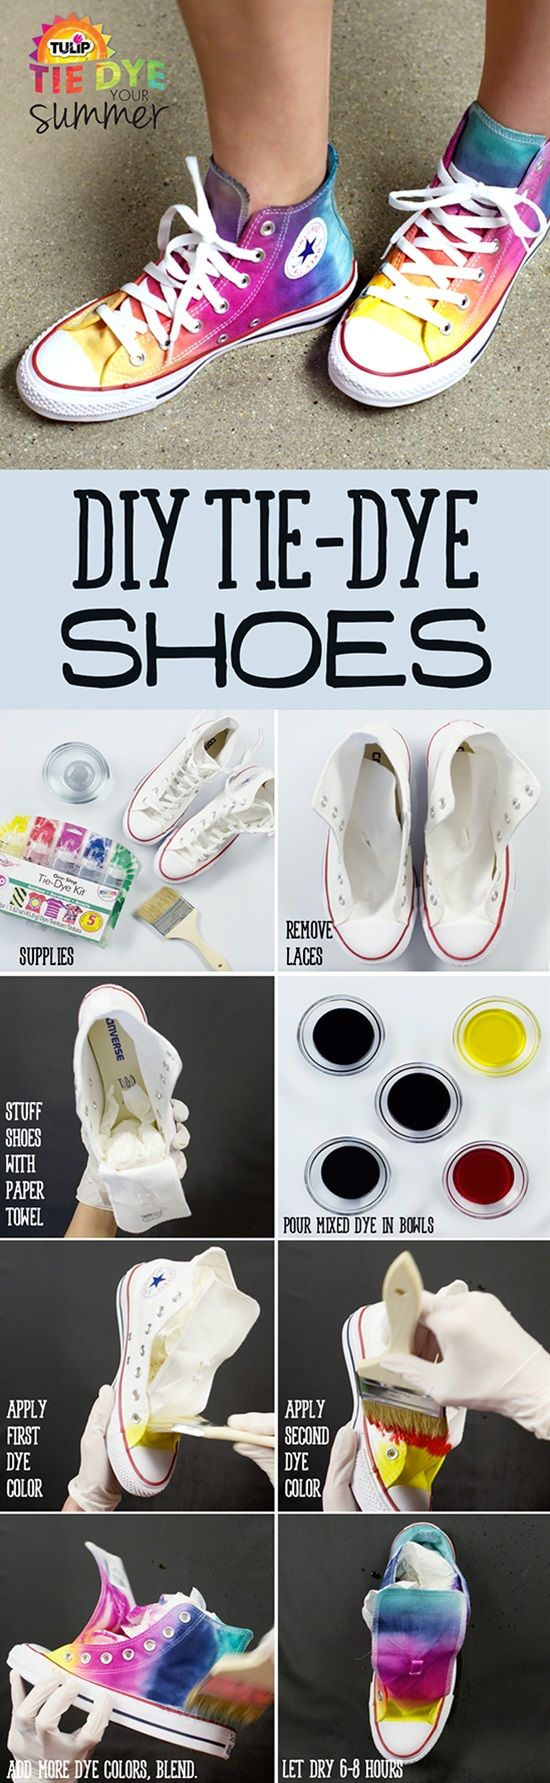 12 creative diy ideas to upgrade your sneakers | craft, diys and